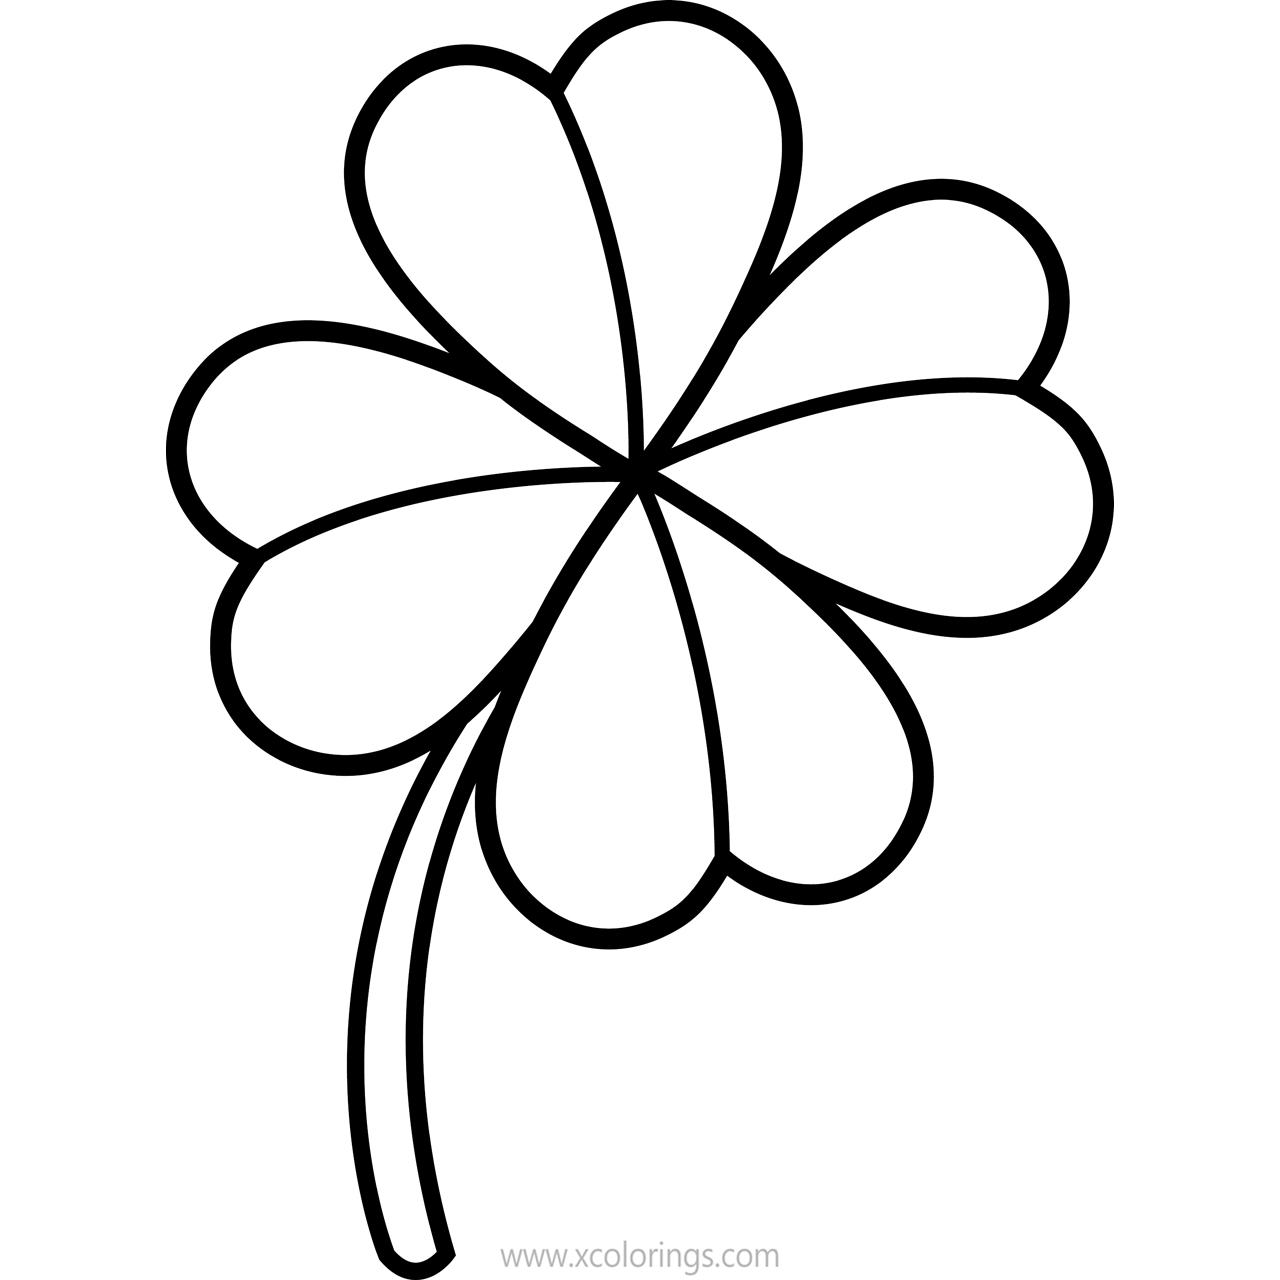 Free Irish 4 Leaf Clover Coloring Pages printable